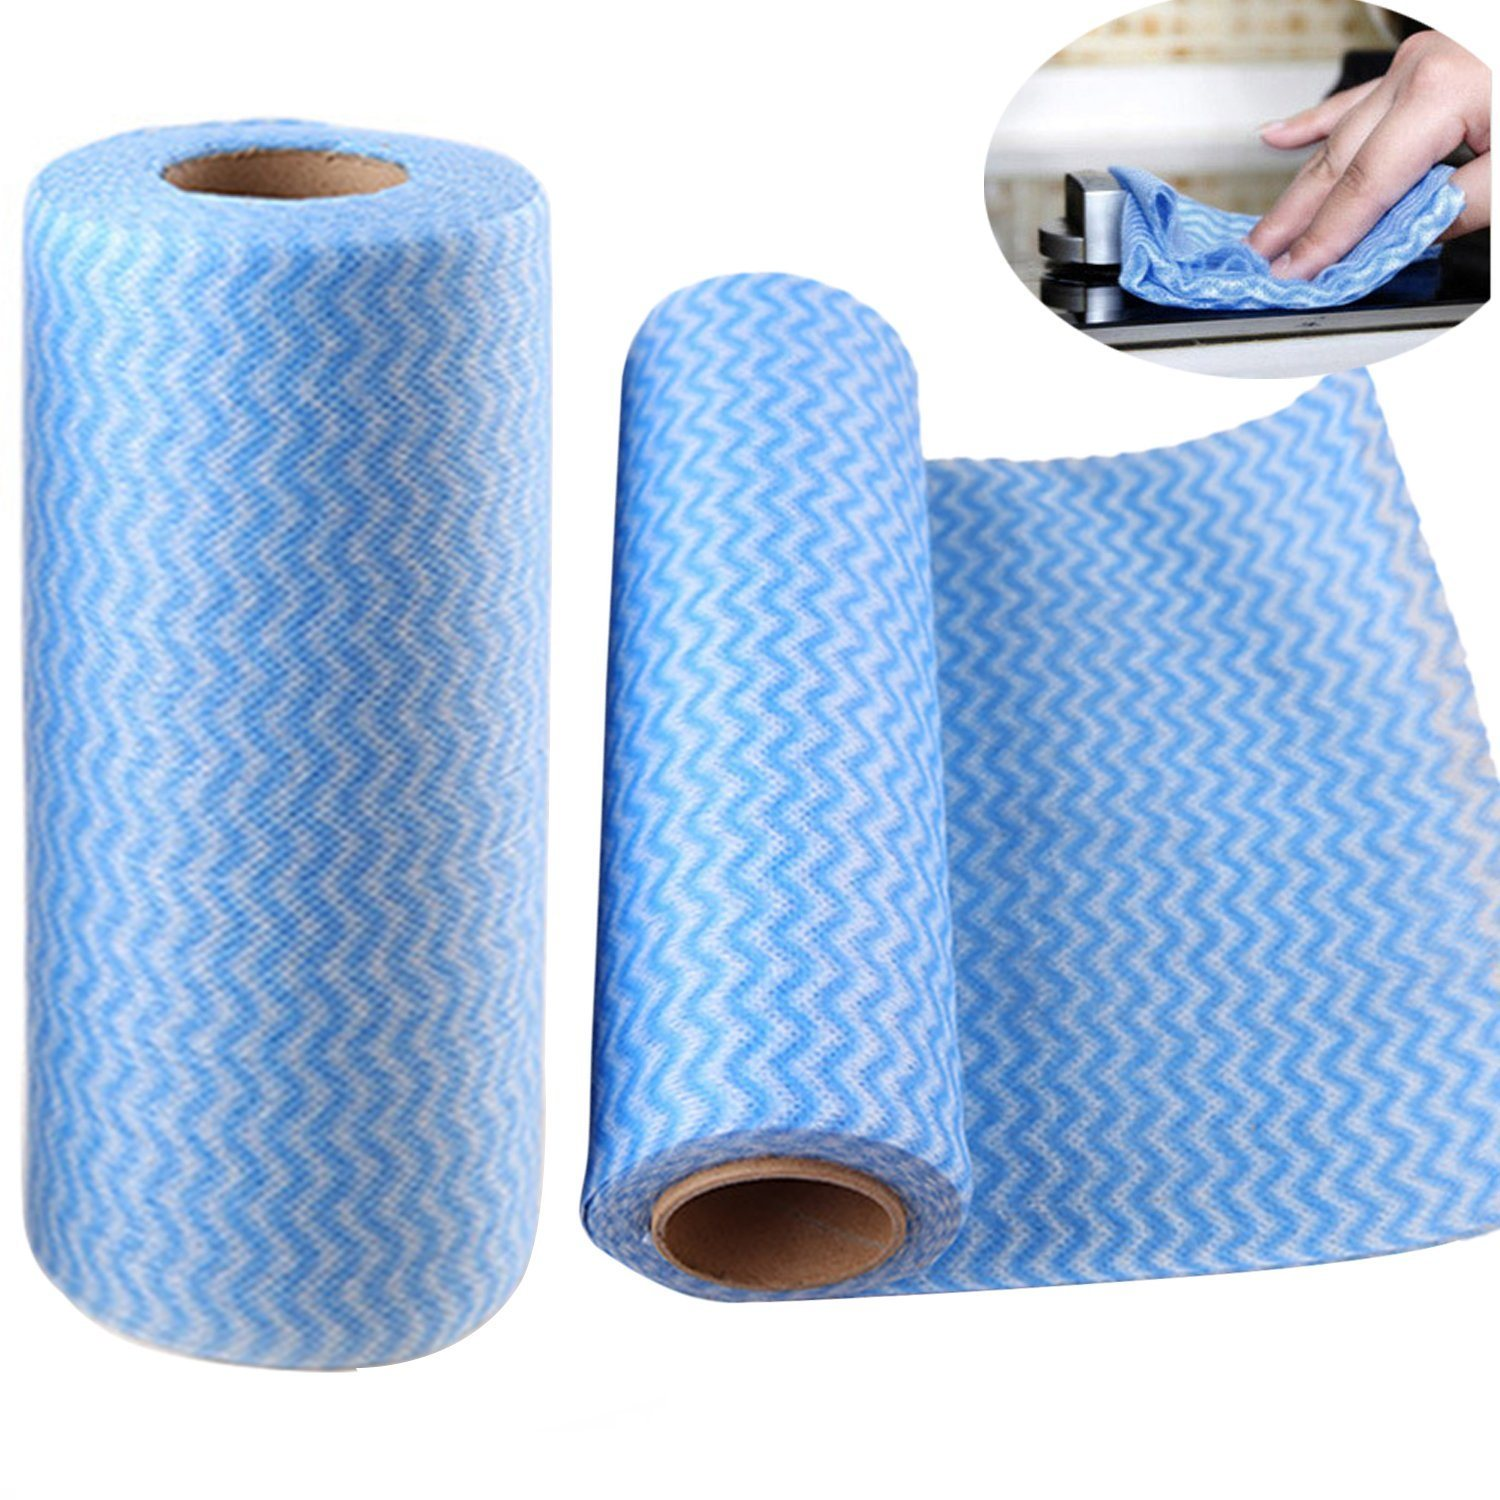 Spunlace Non Woven Cleaning Cloth with Break Point